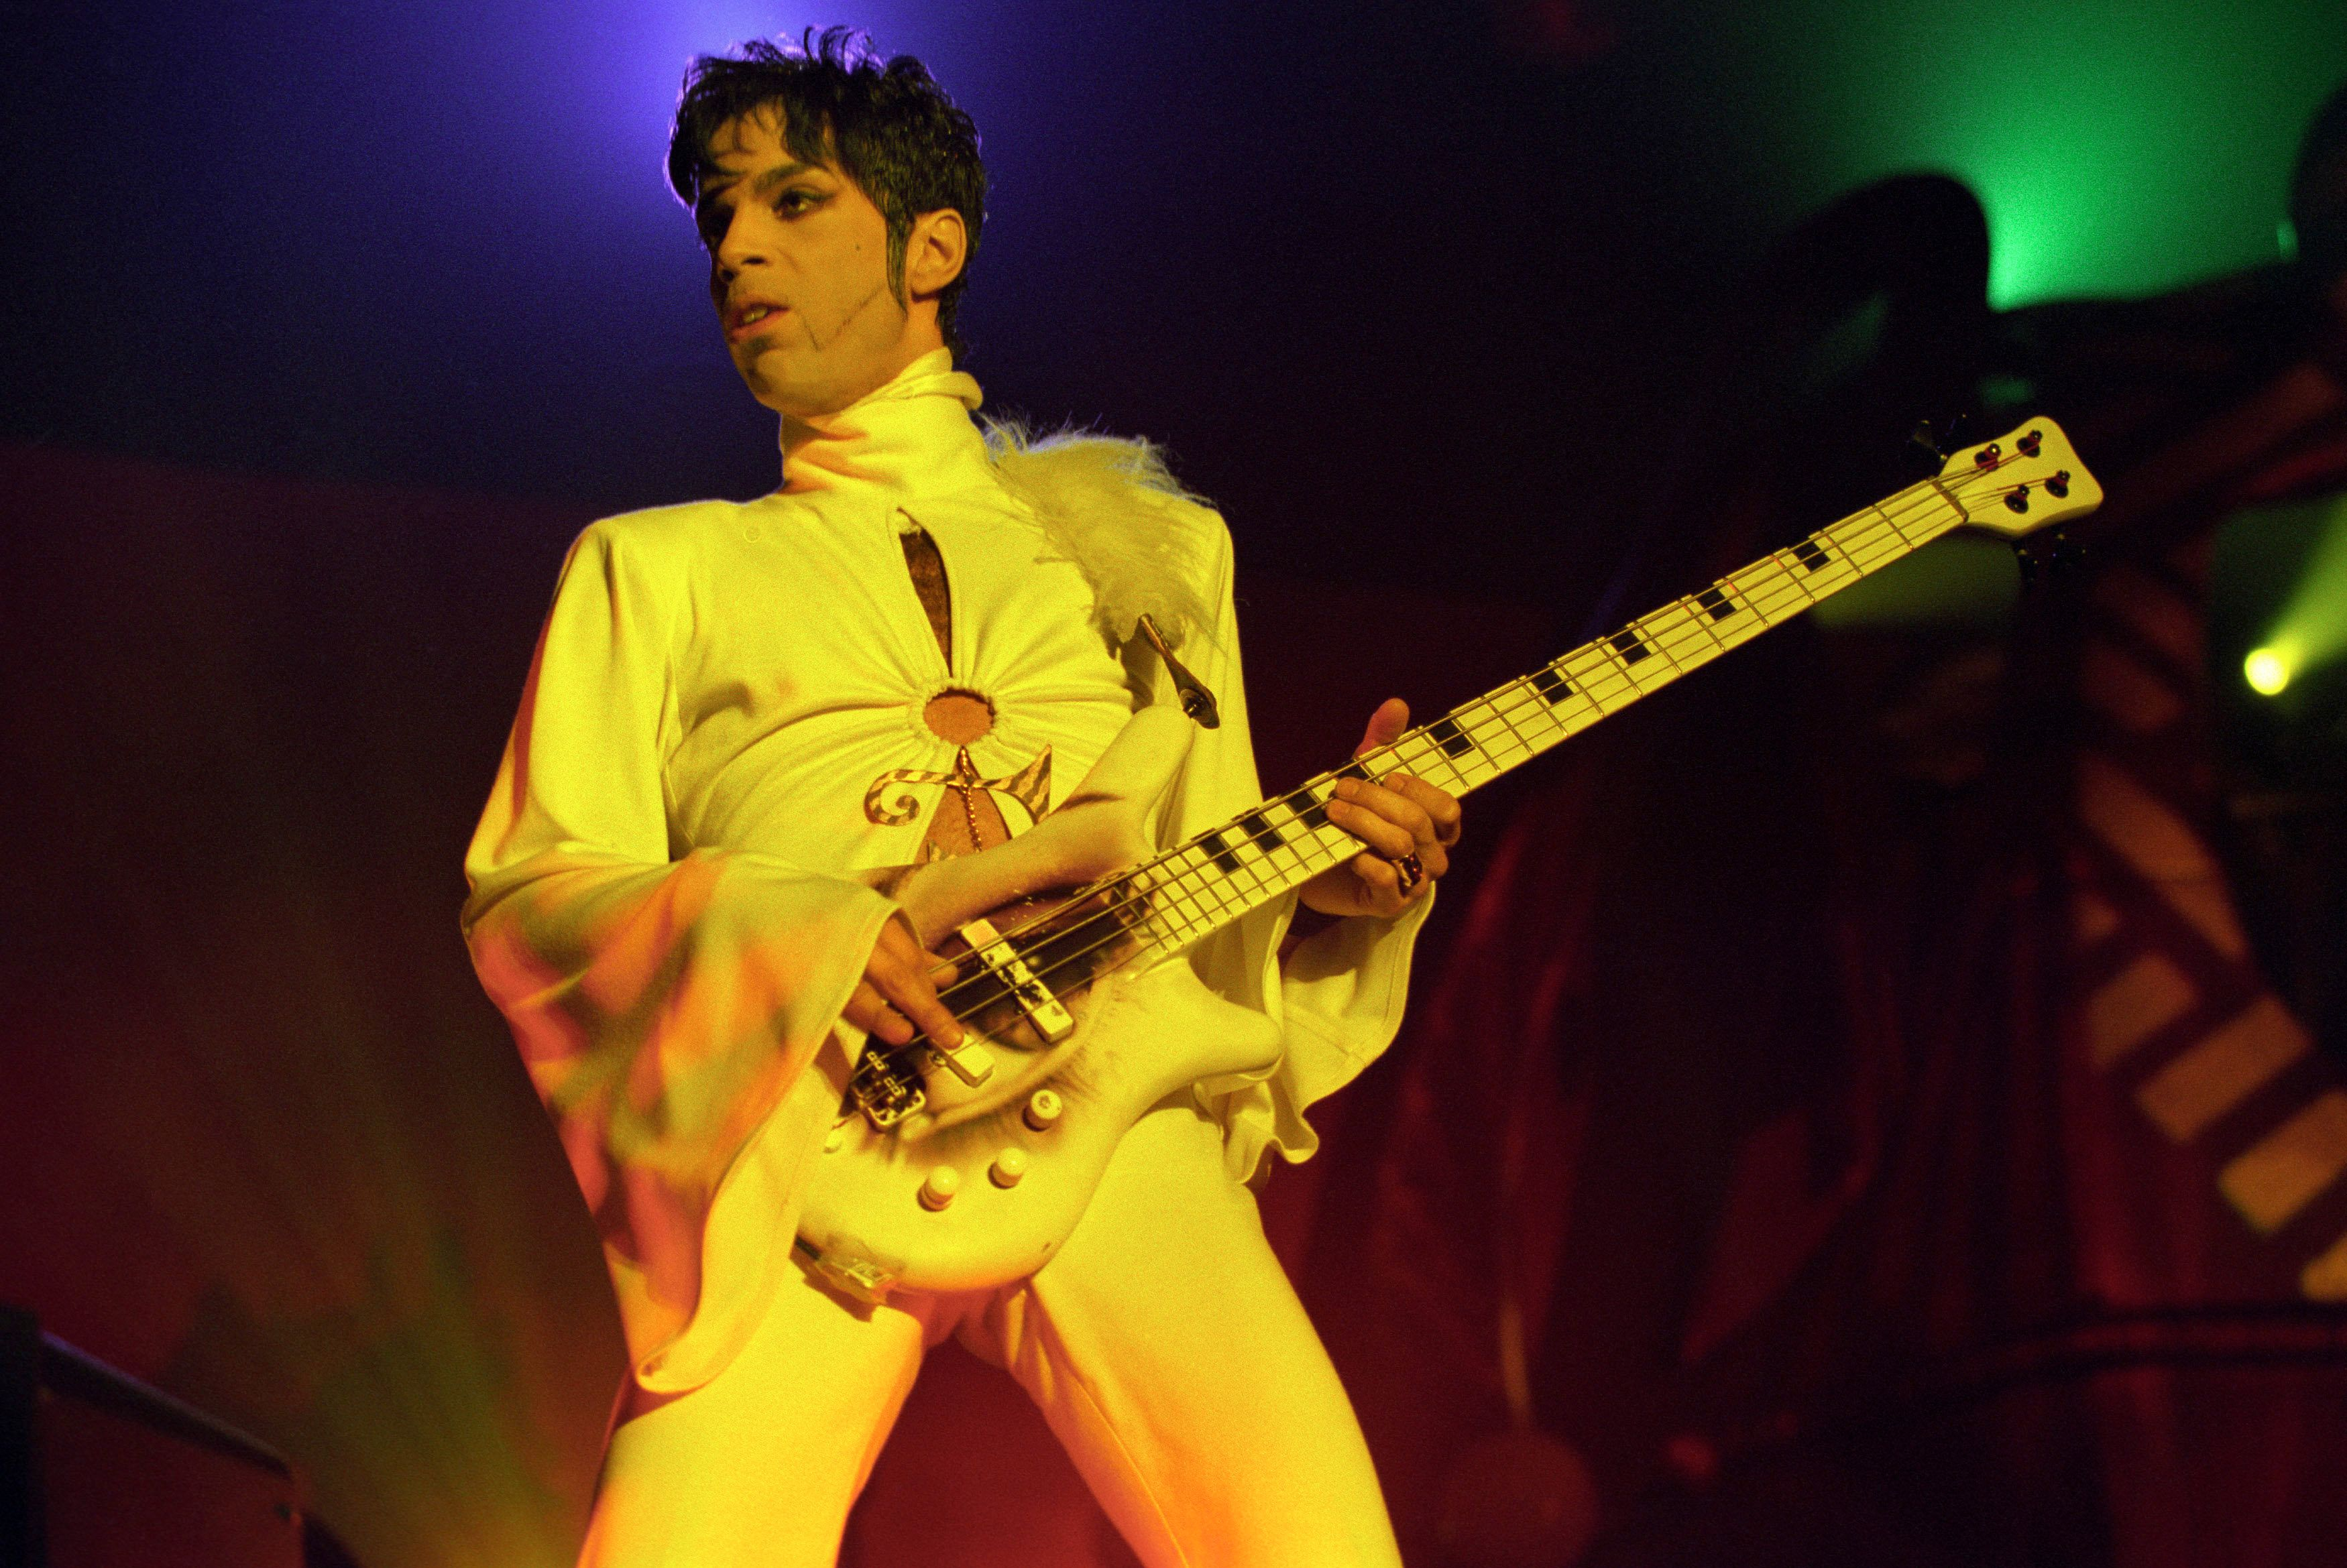 BREDA, HOLLAND - MARCH 24: Prince performs live on stage at the Brabathallen in Breda, Holland on March 24 1995. The Ultimate Live Experience Tour (Photo by Paul Bergen / Redferns)